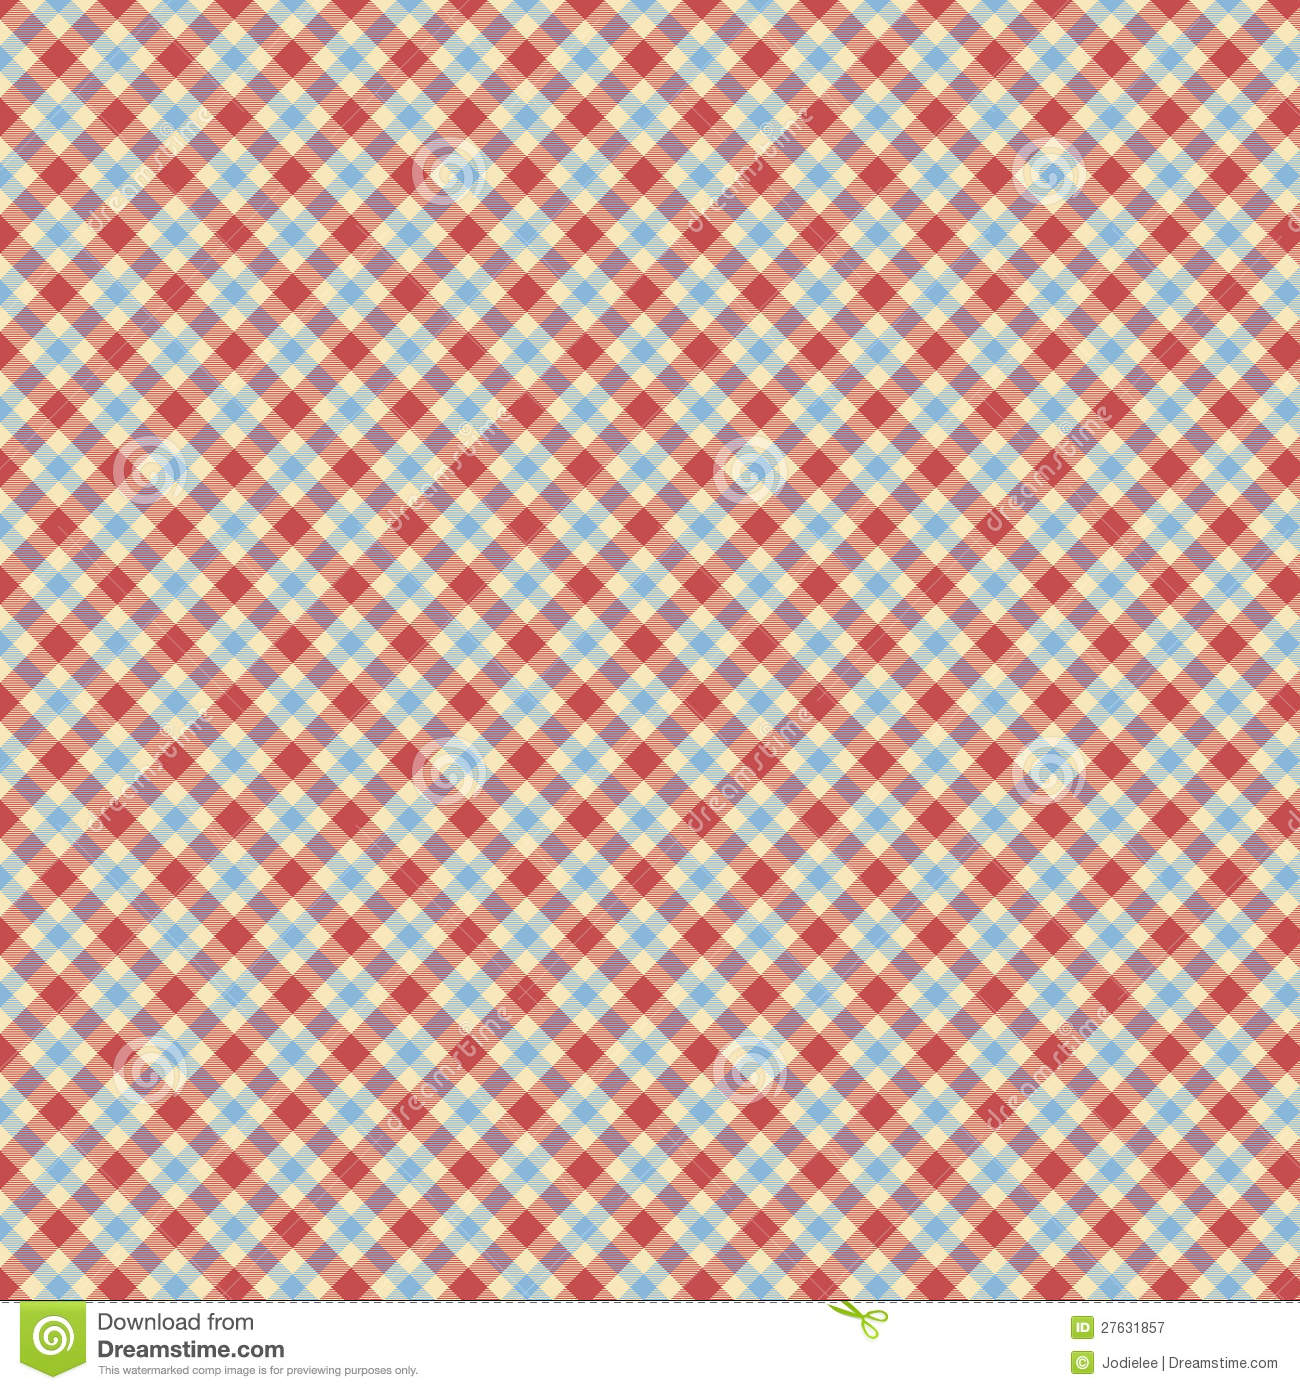 Blue and red tartan check repeat wallpaper pattern stock for Red check wallpaper